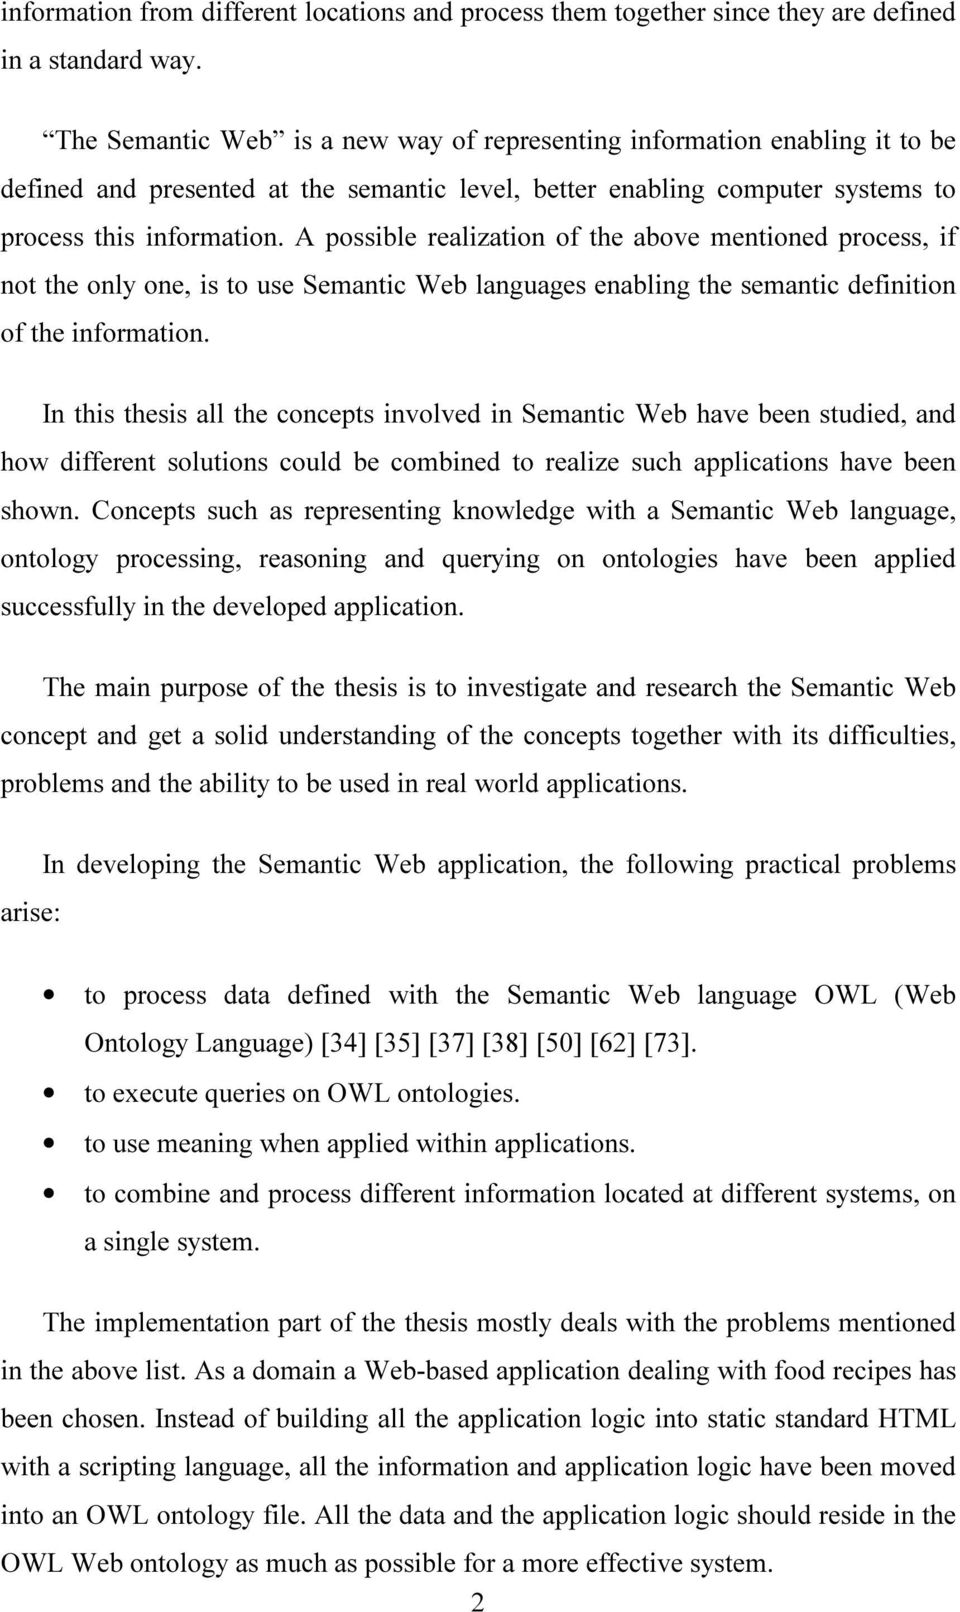 A possible realization of the above mentioned process, if not the only one, is to use Semantic Web languages enabling the semantic definition of the information.